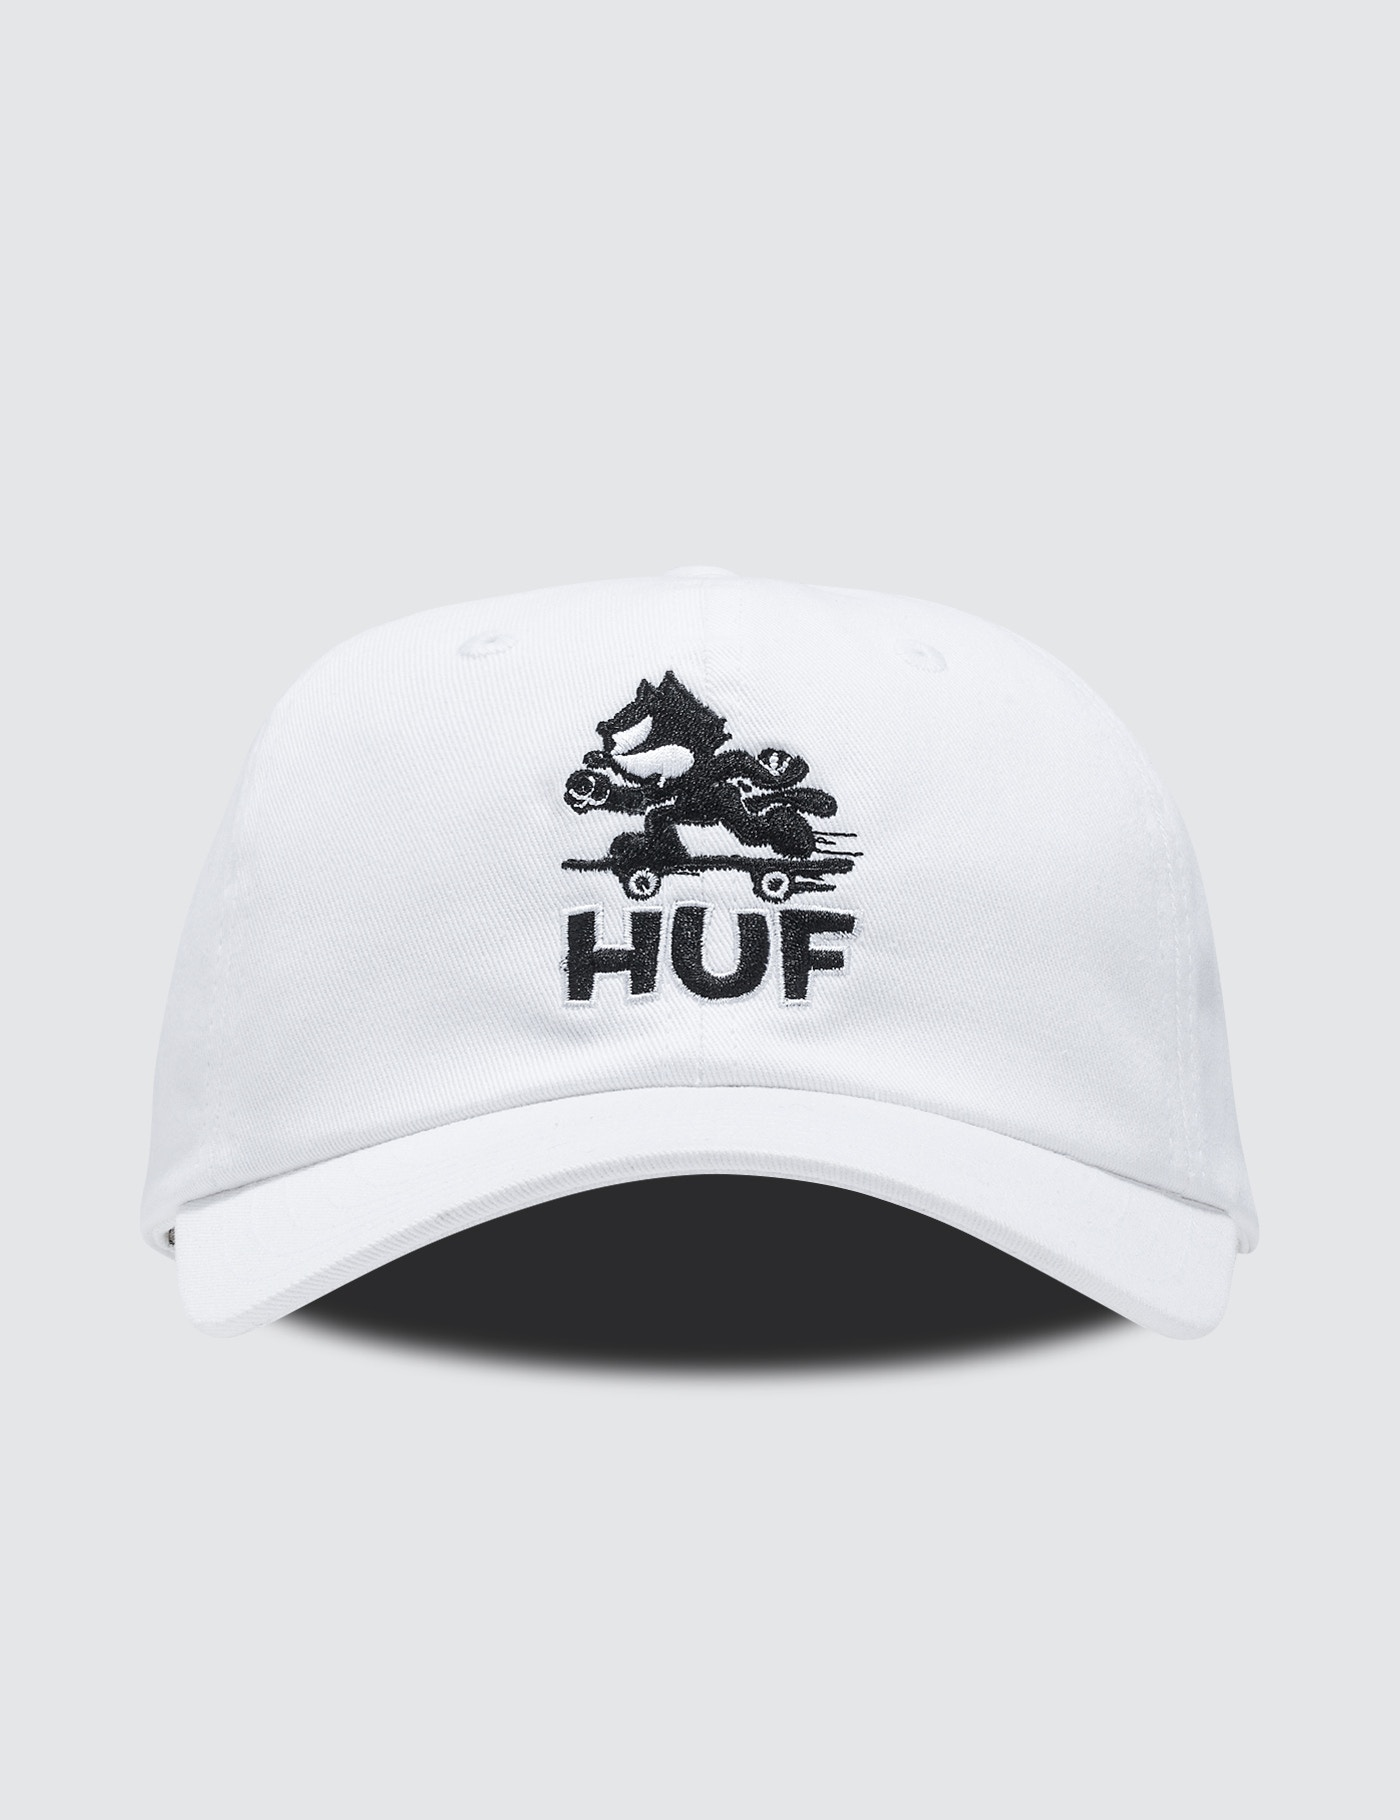 742ed618068 Buy Original HUF Felix Skate Curve Brim Cap at Indonesia